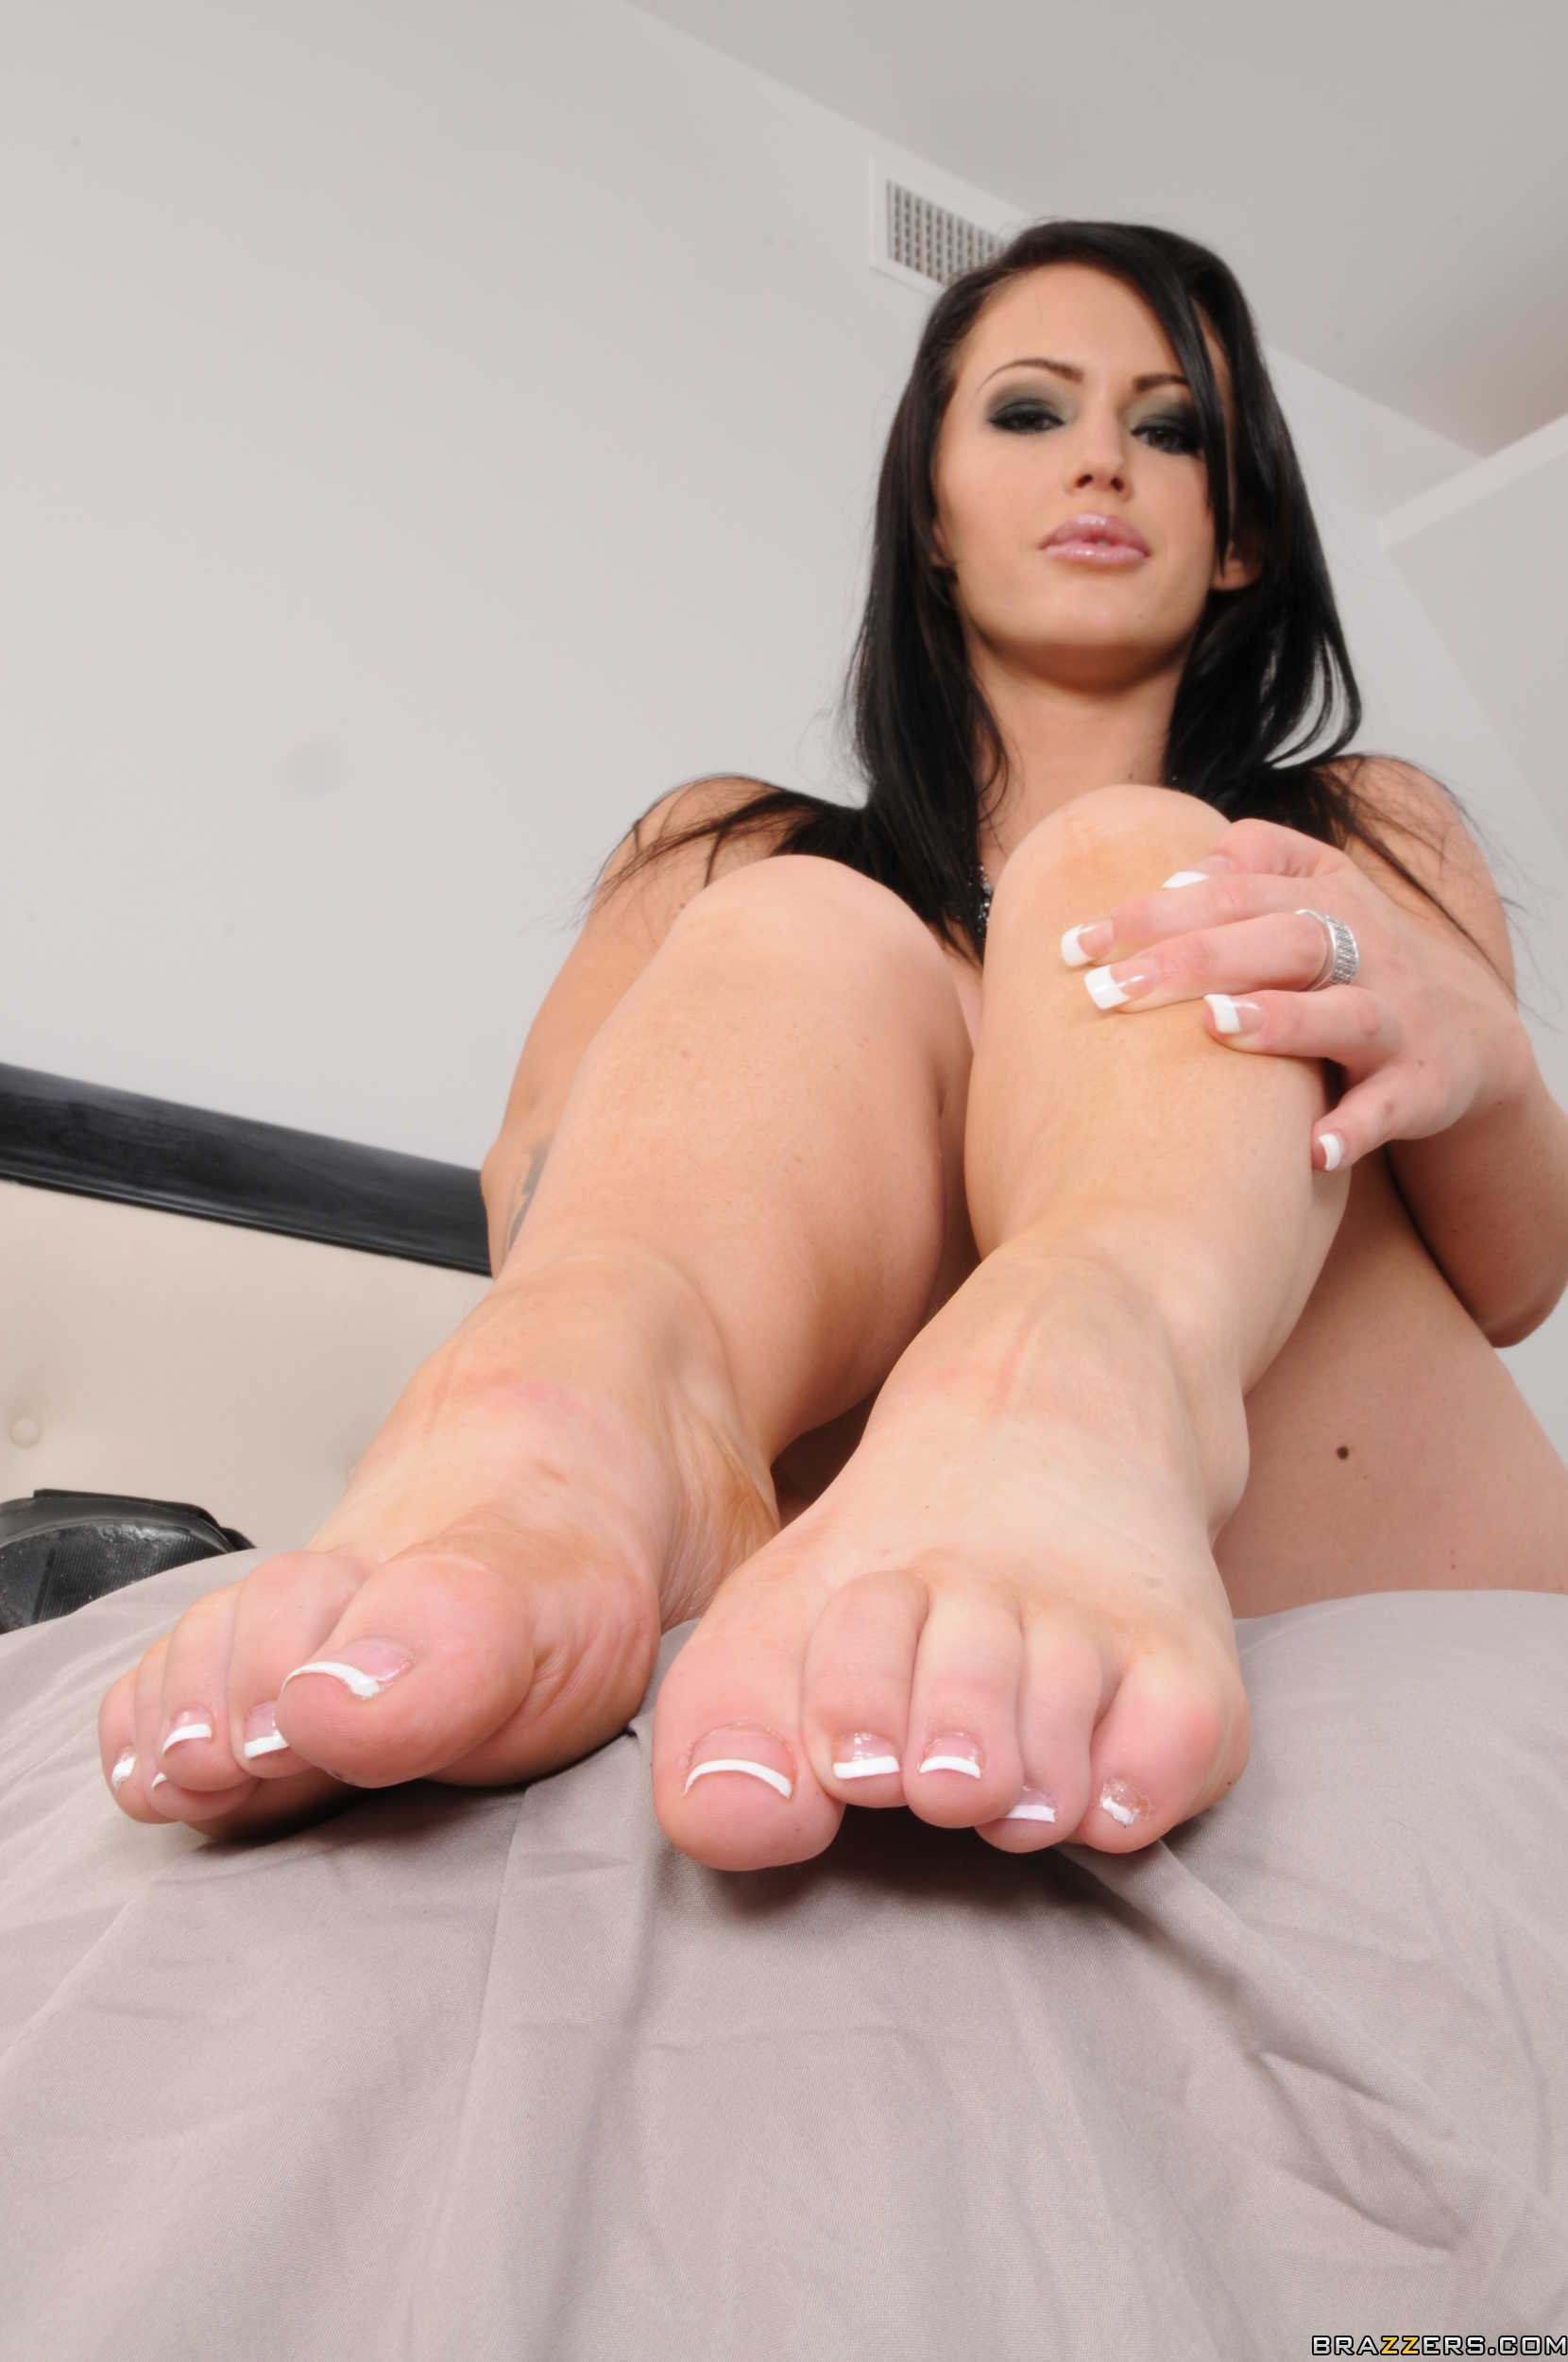 feet Jenna Presley HD Wallpaper